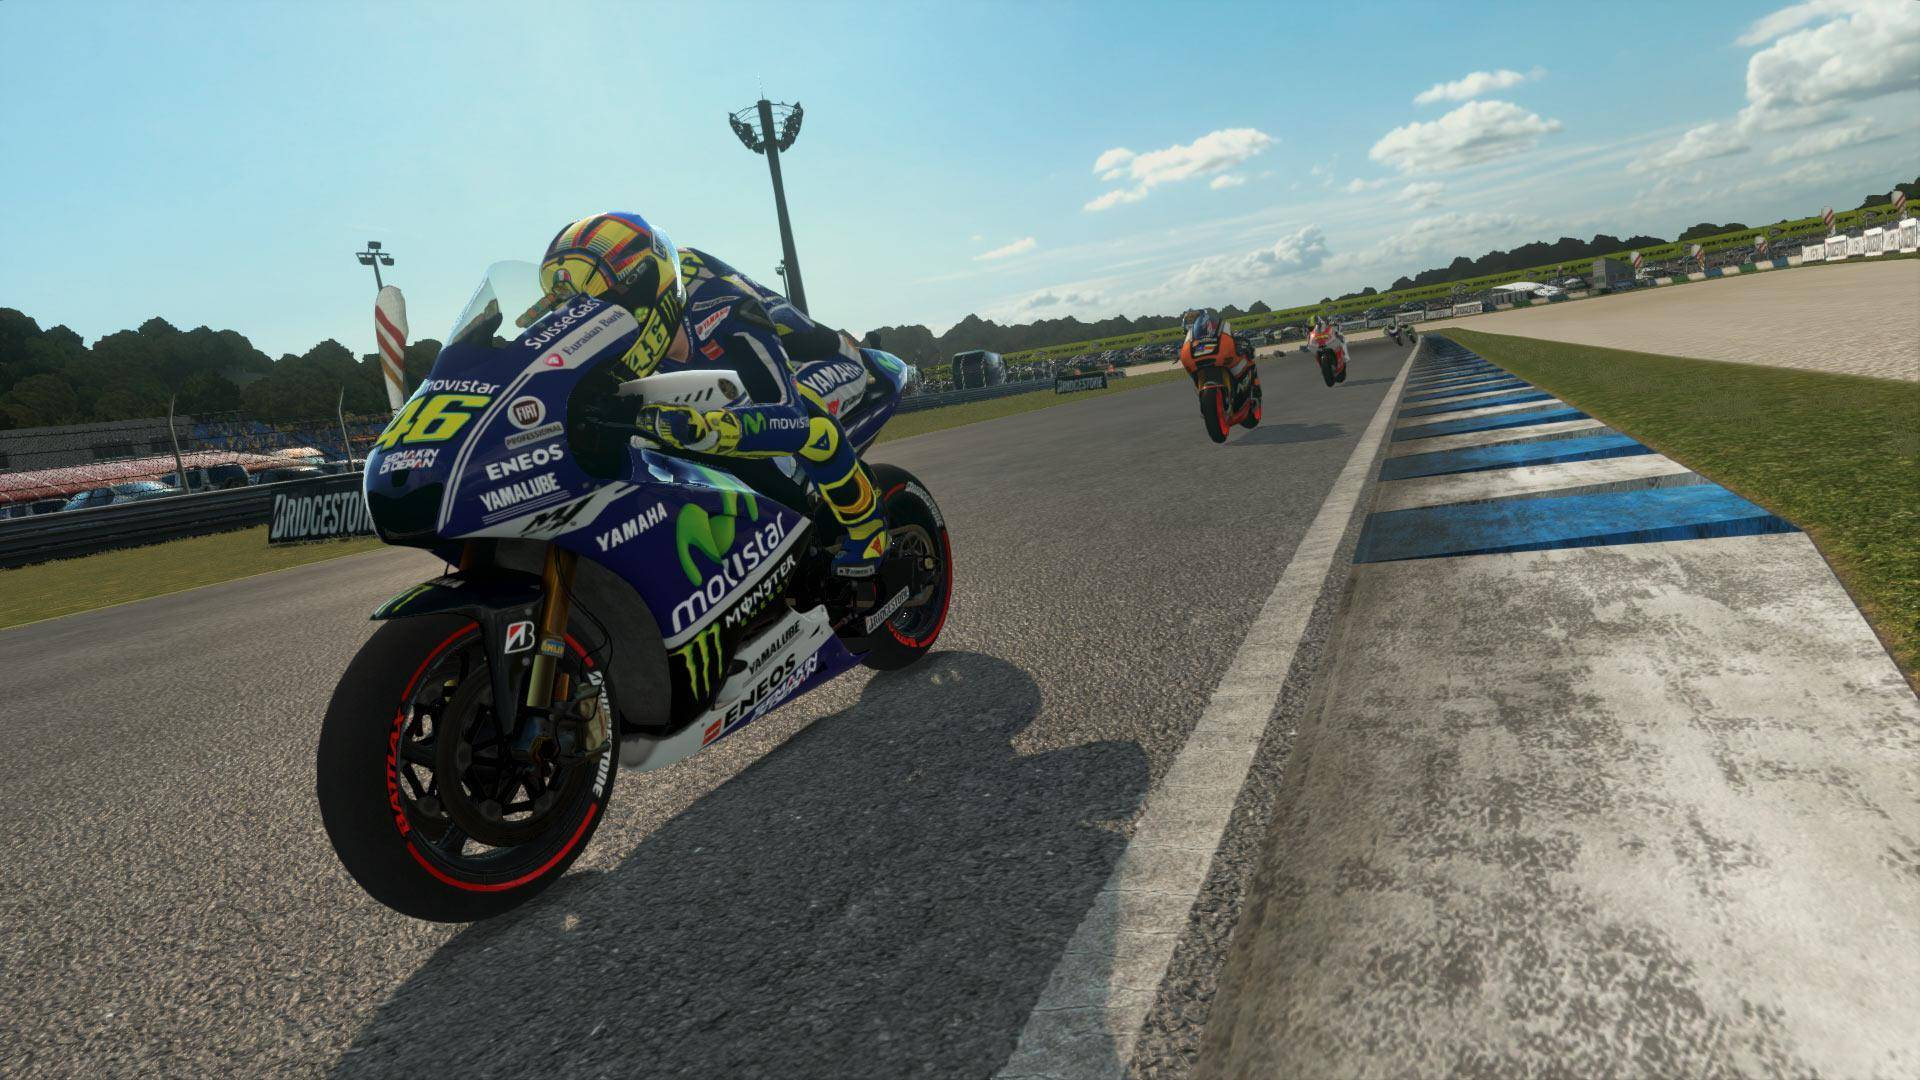 Motogp Ps4 Price | MotoGP 2017 Info, Video, Points Table